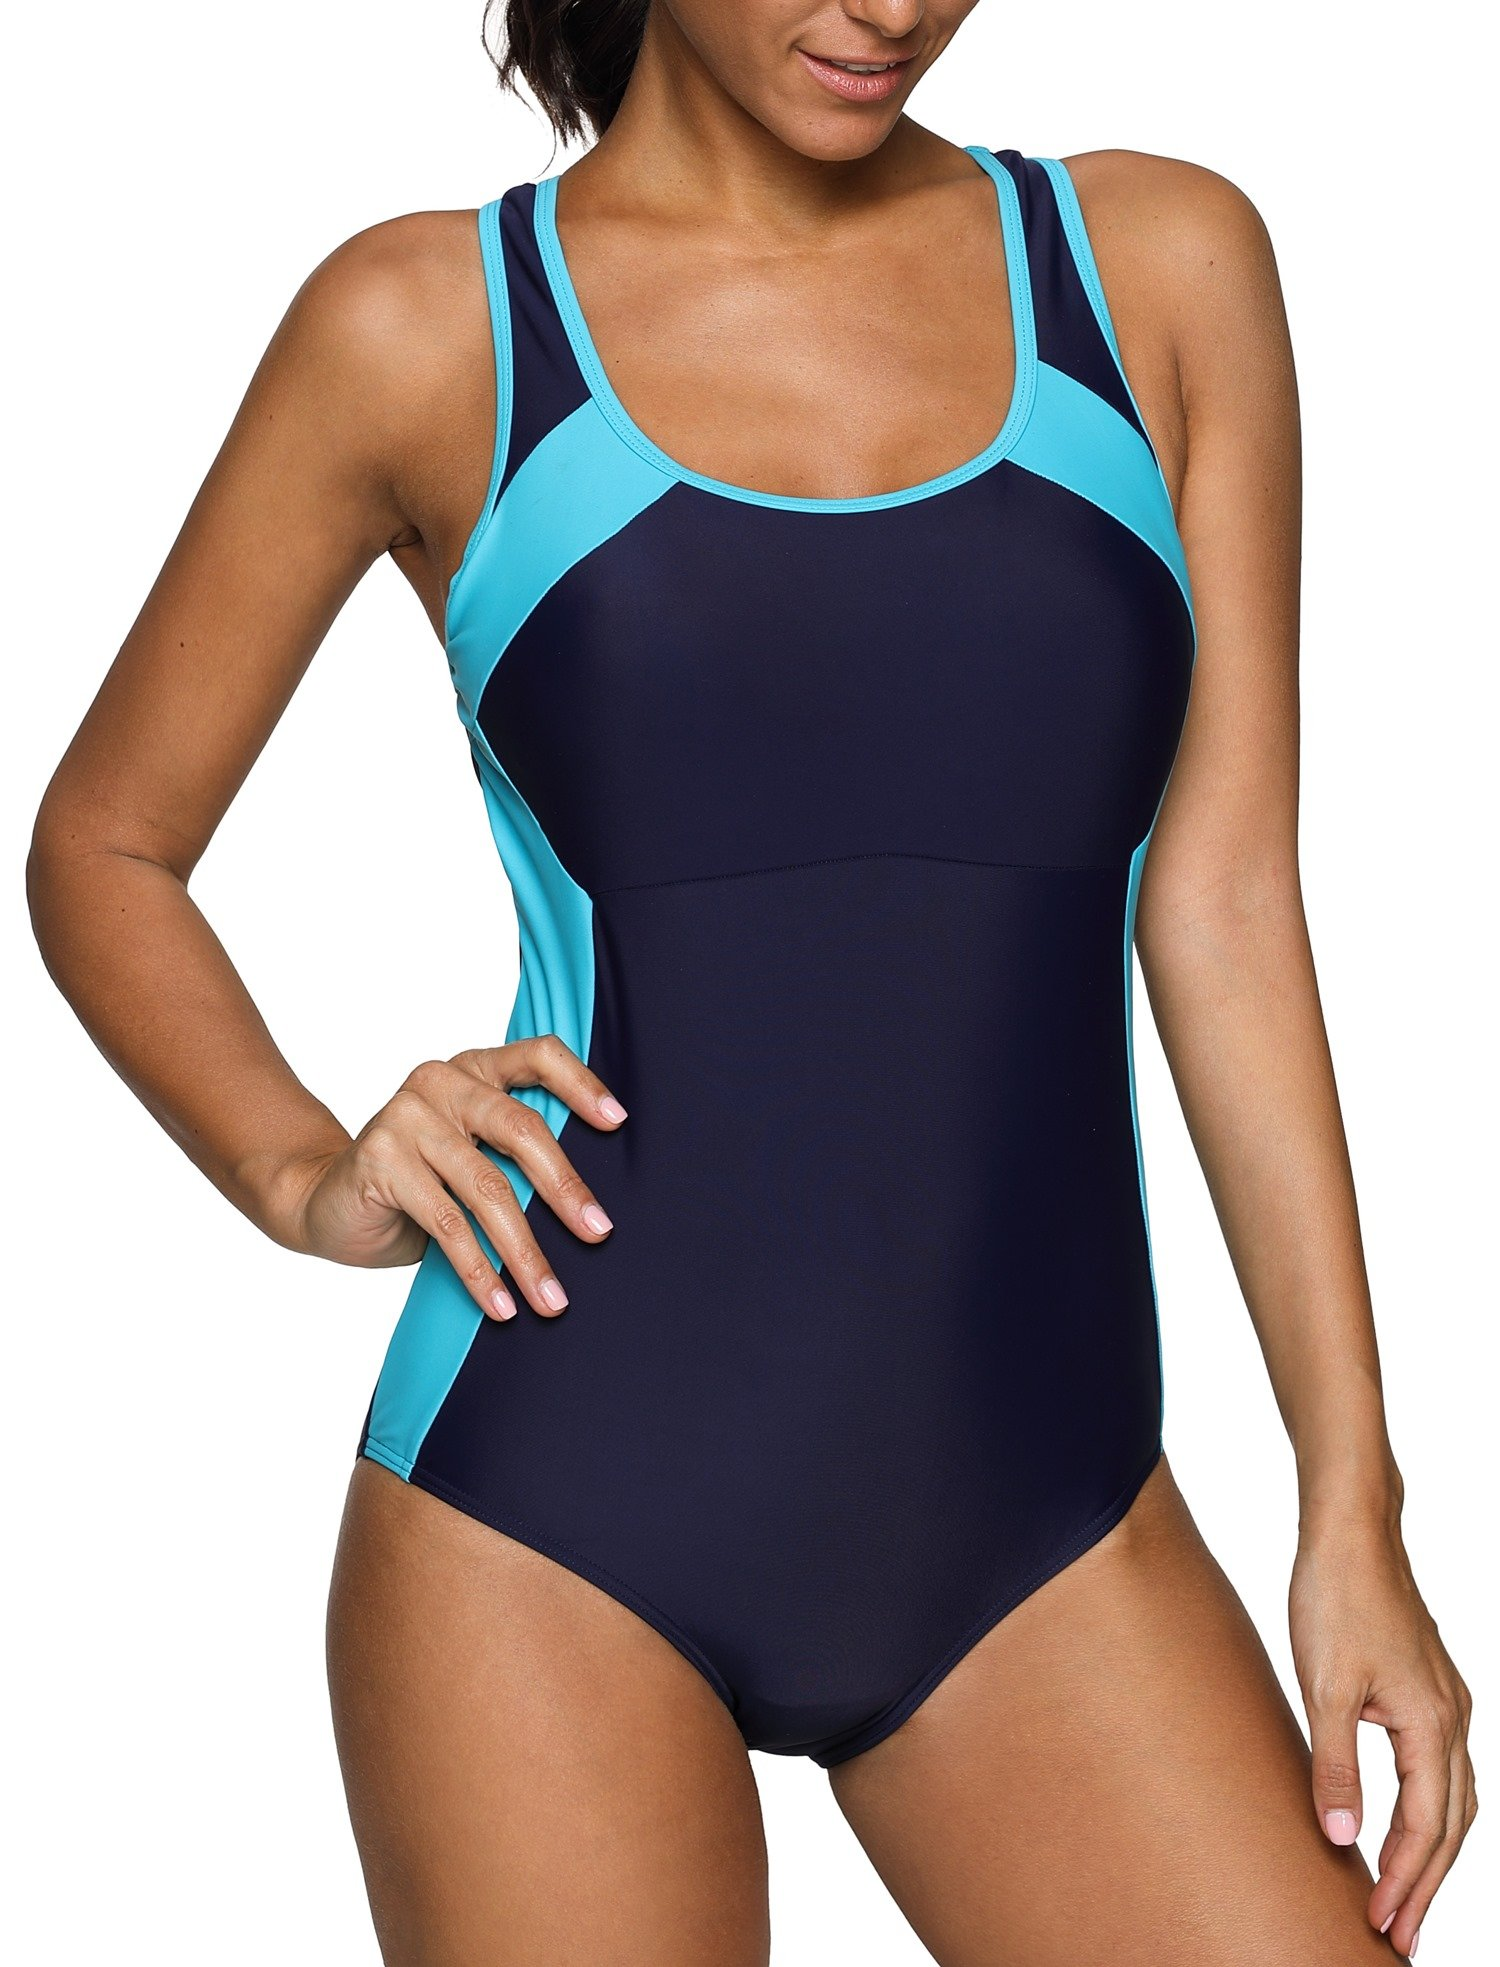 ATTRACO Womans Slimming One Piece Sporty Racerback Bathing Suit Swimsuit Navy XXL by ATTRACO